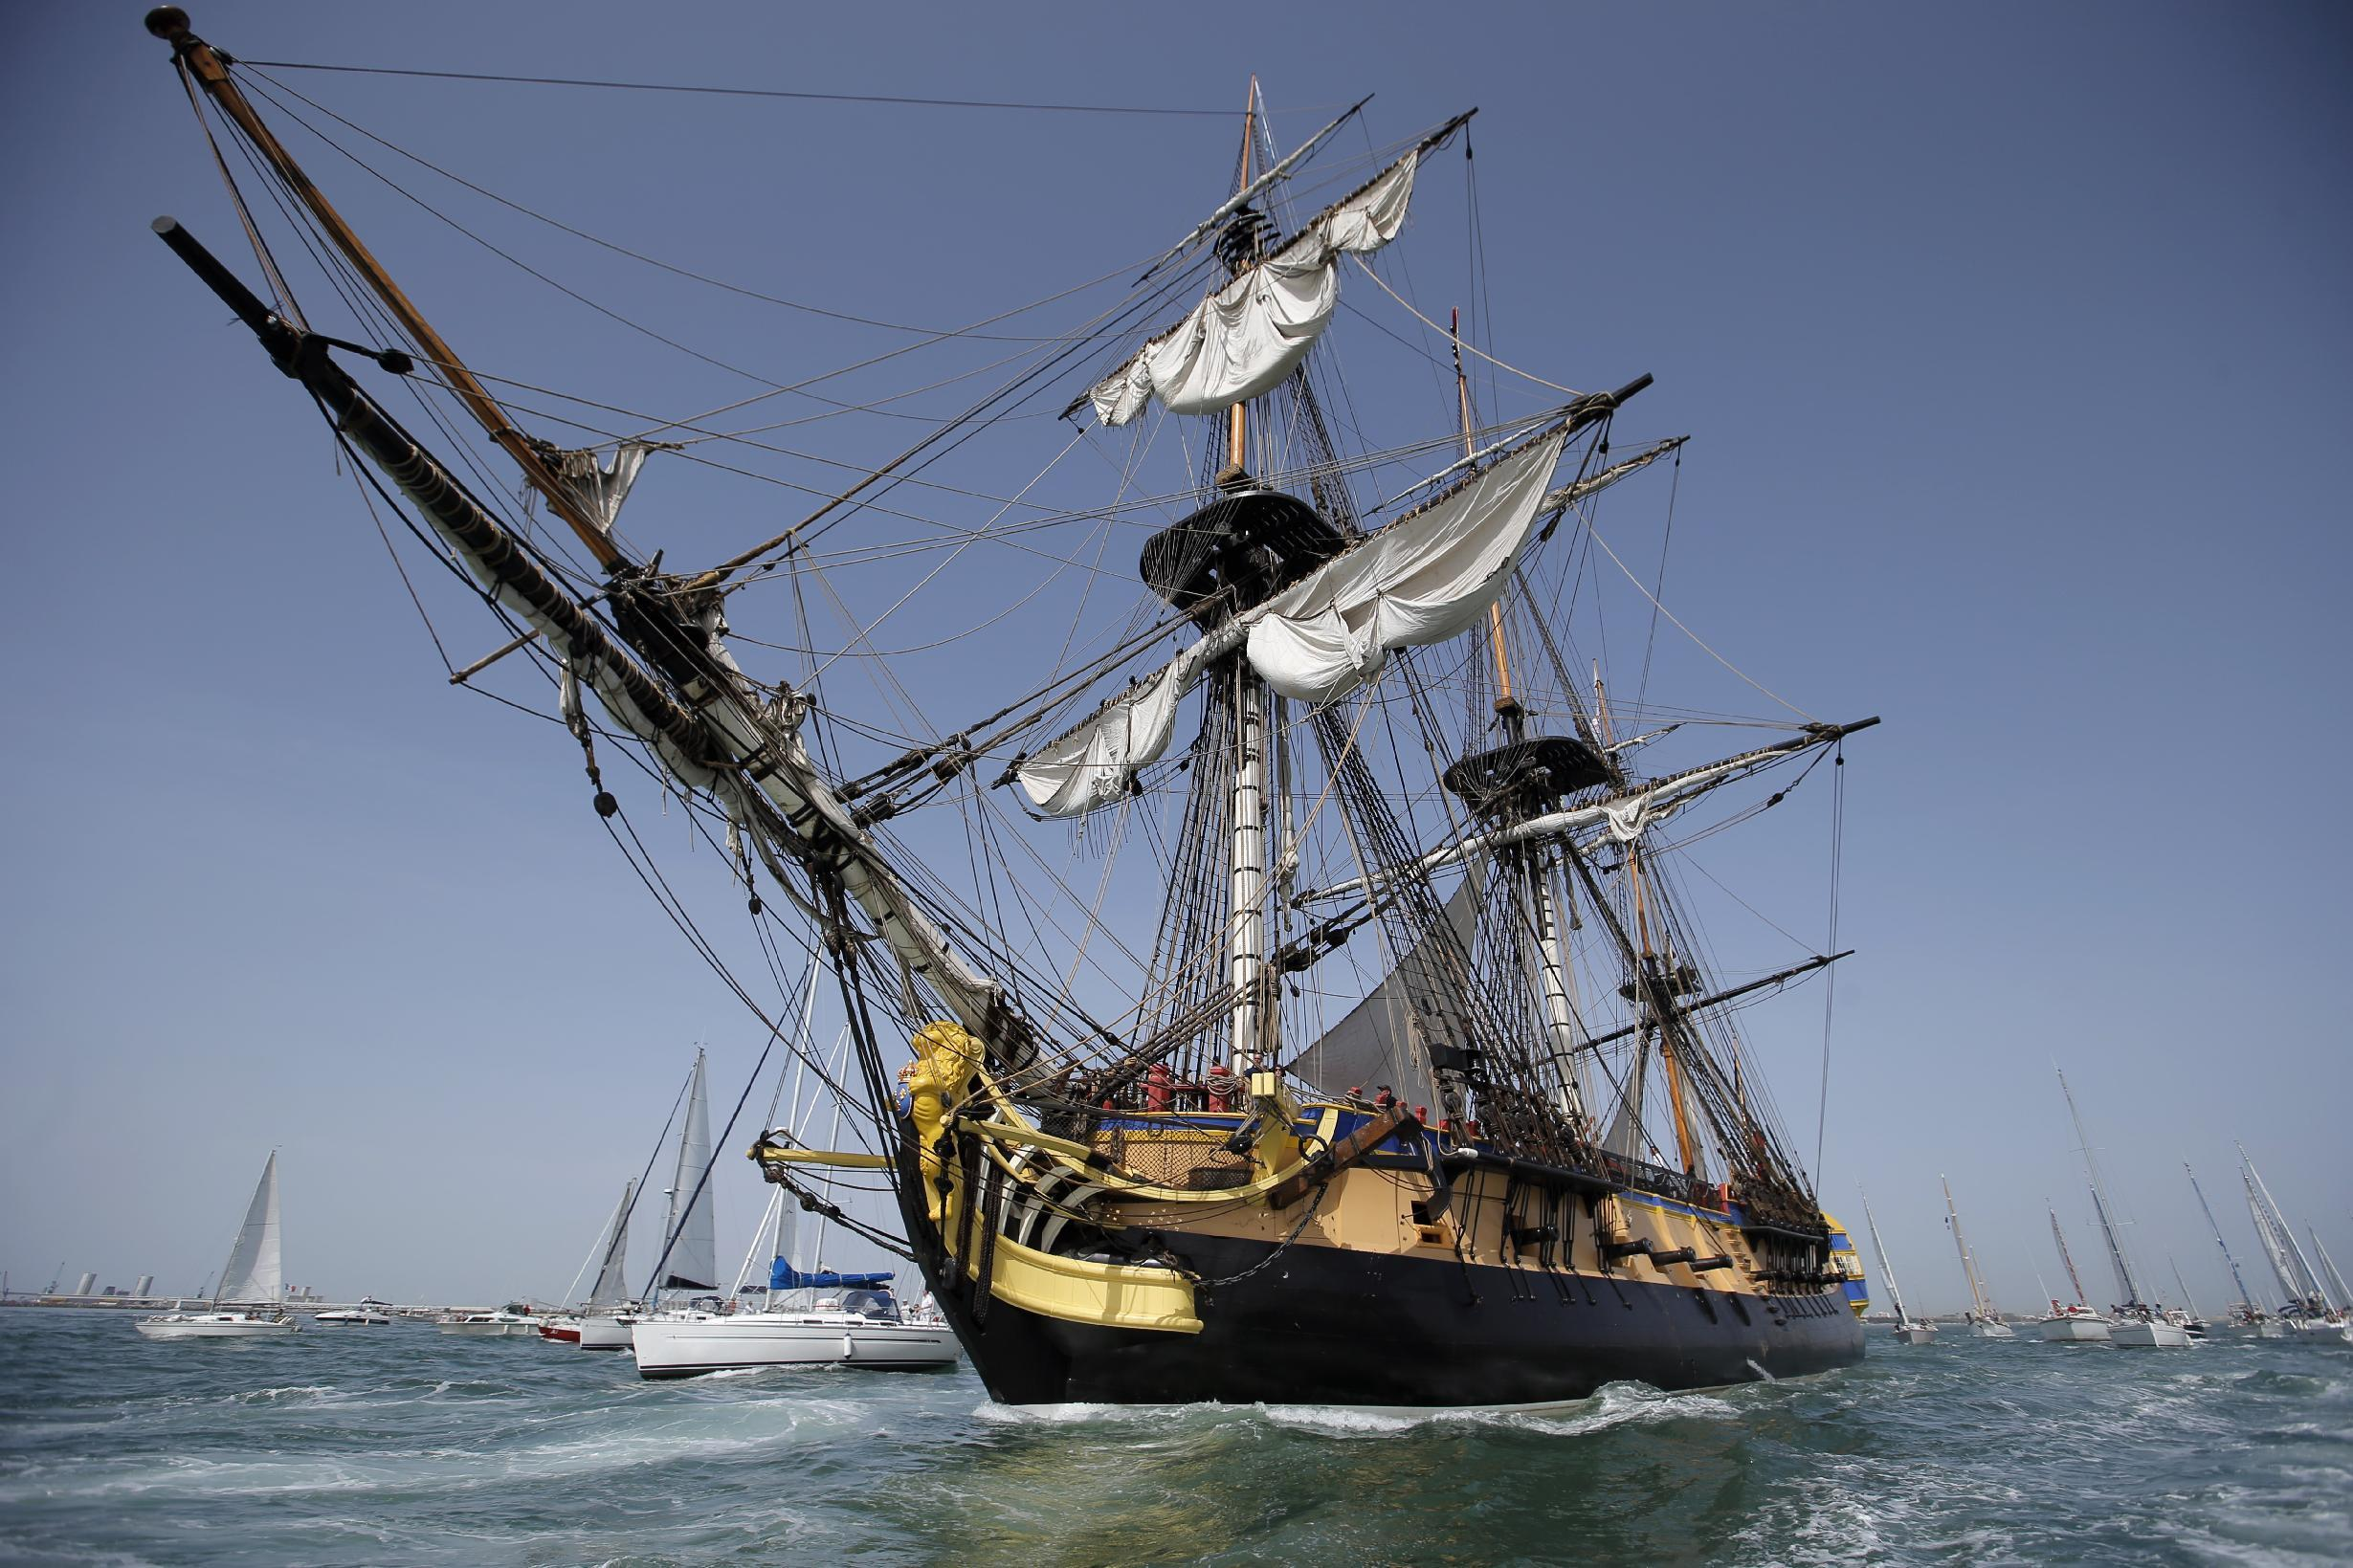 French replica of revolutionary frigate sets sail for Boston